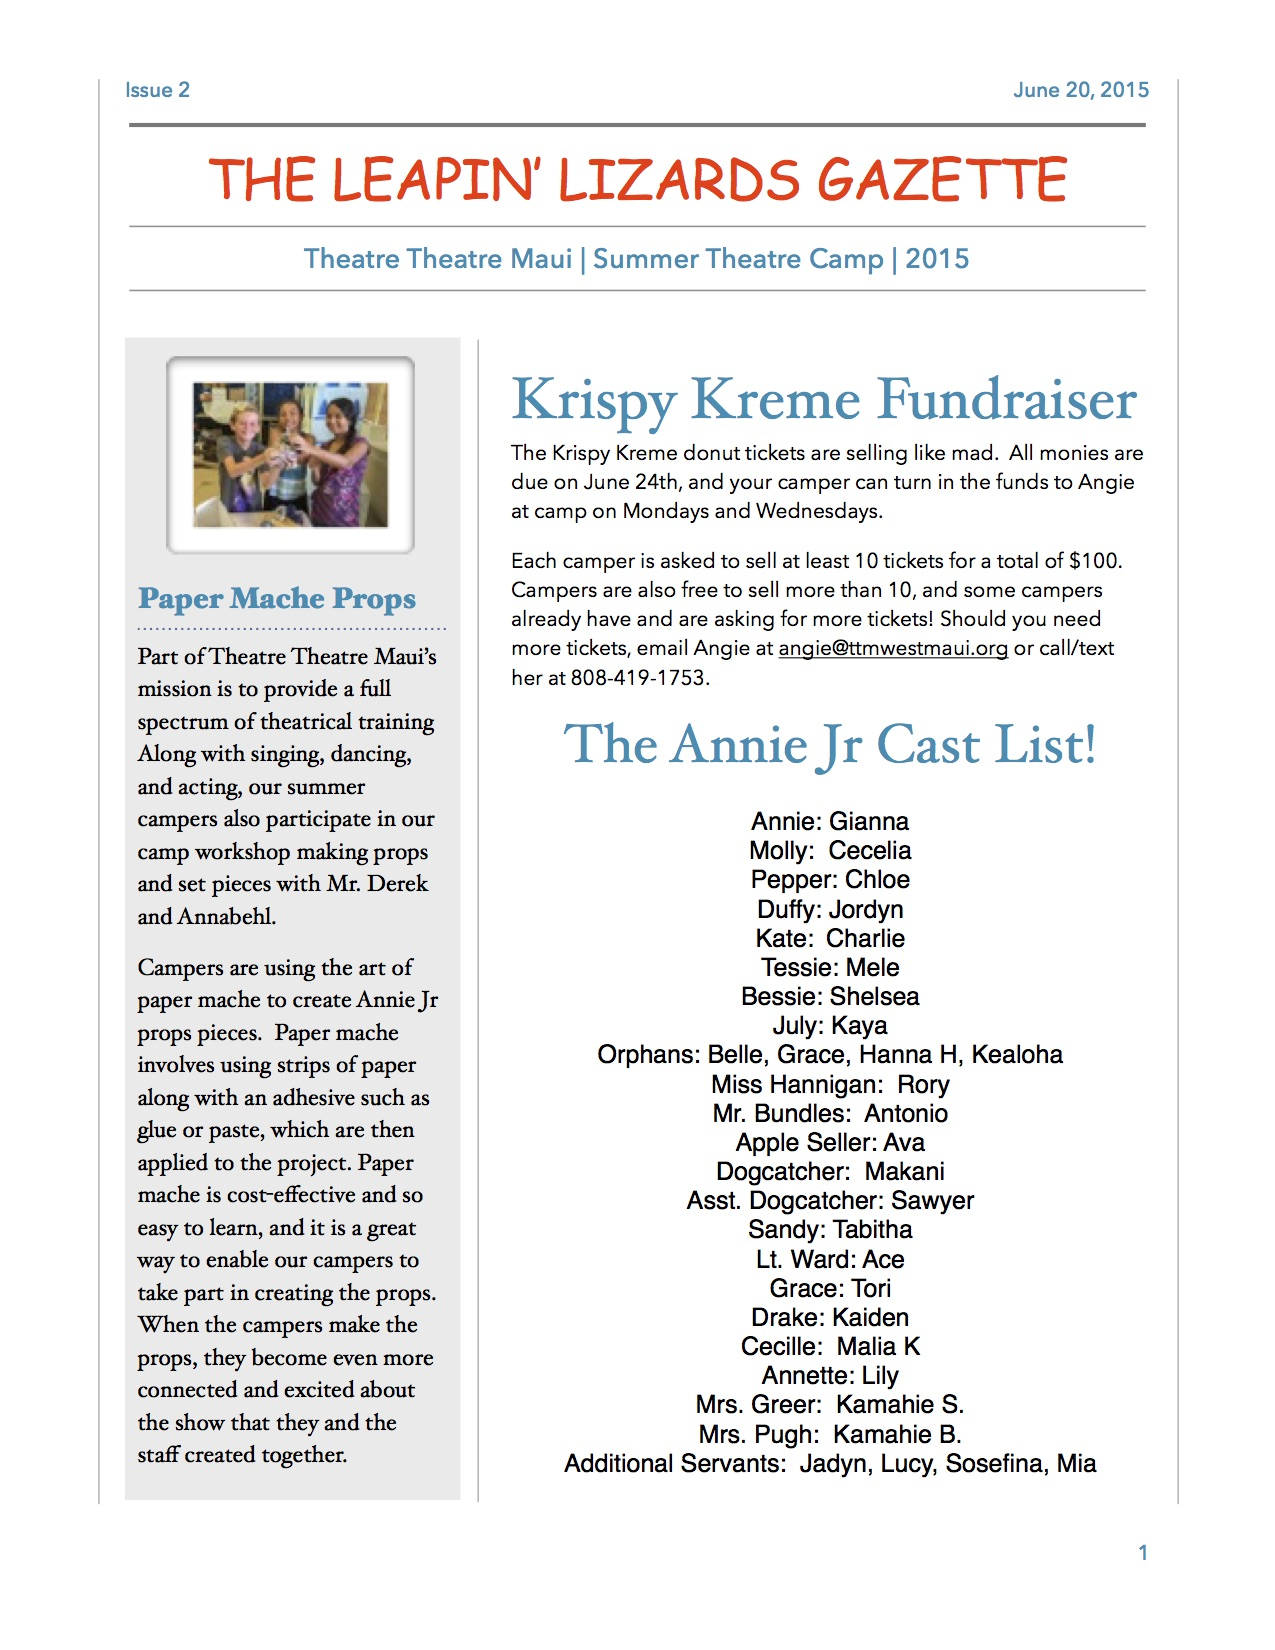 Issue #2 of the Leapin' Lizards Gazette Camp Newsletter